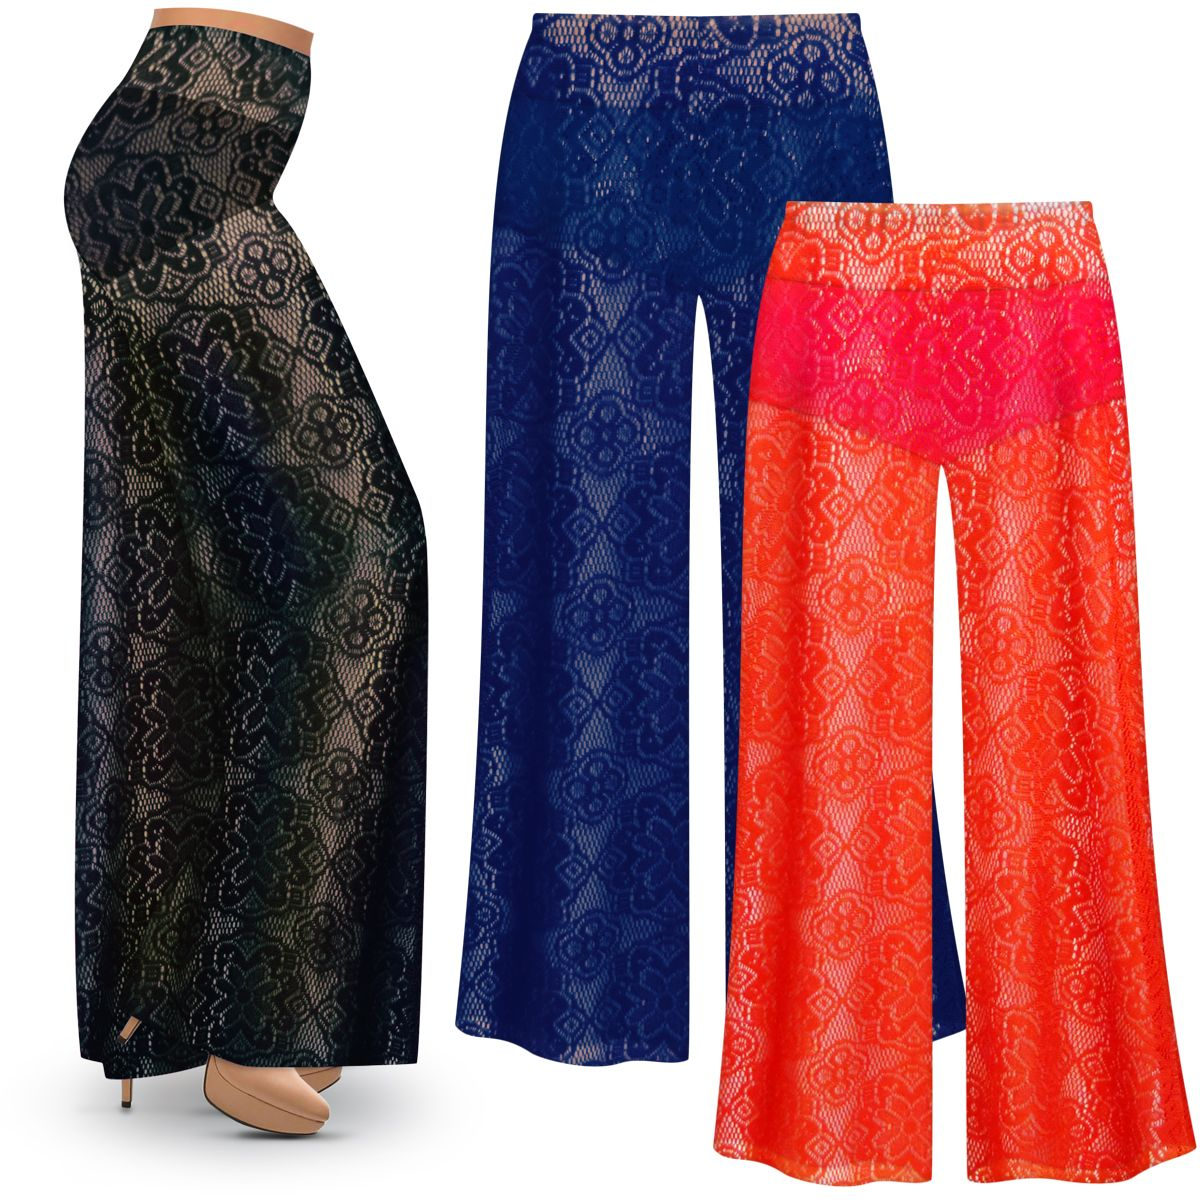 Sold Out Plus Size Stretchy Crochet Lace Palazzo Pants Swimsuit